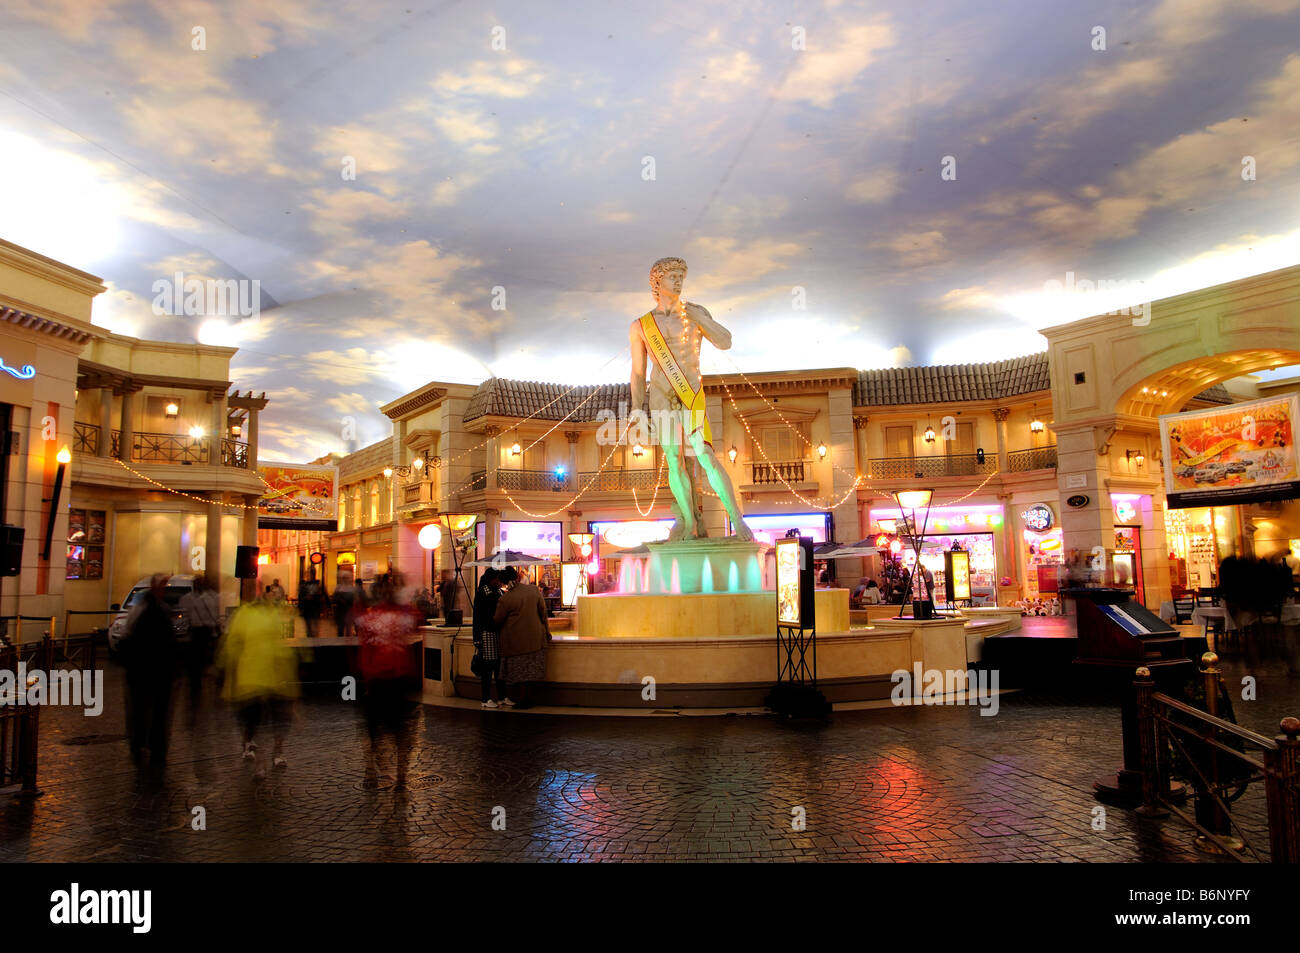 emperor's palace mall johannesburg south africa - Stock Image